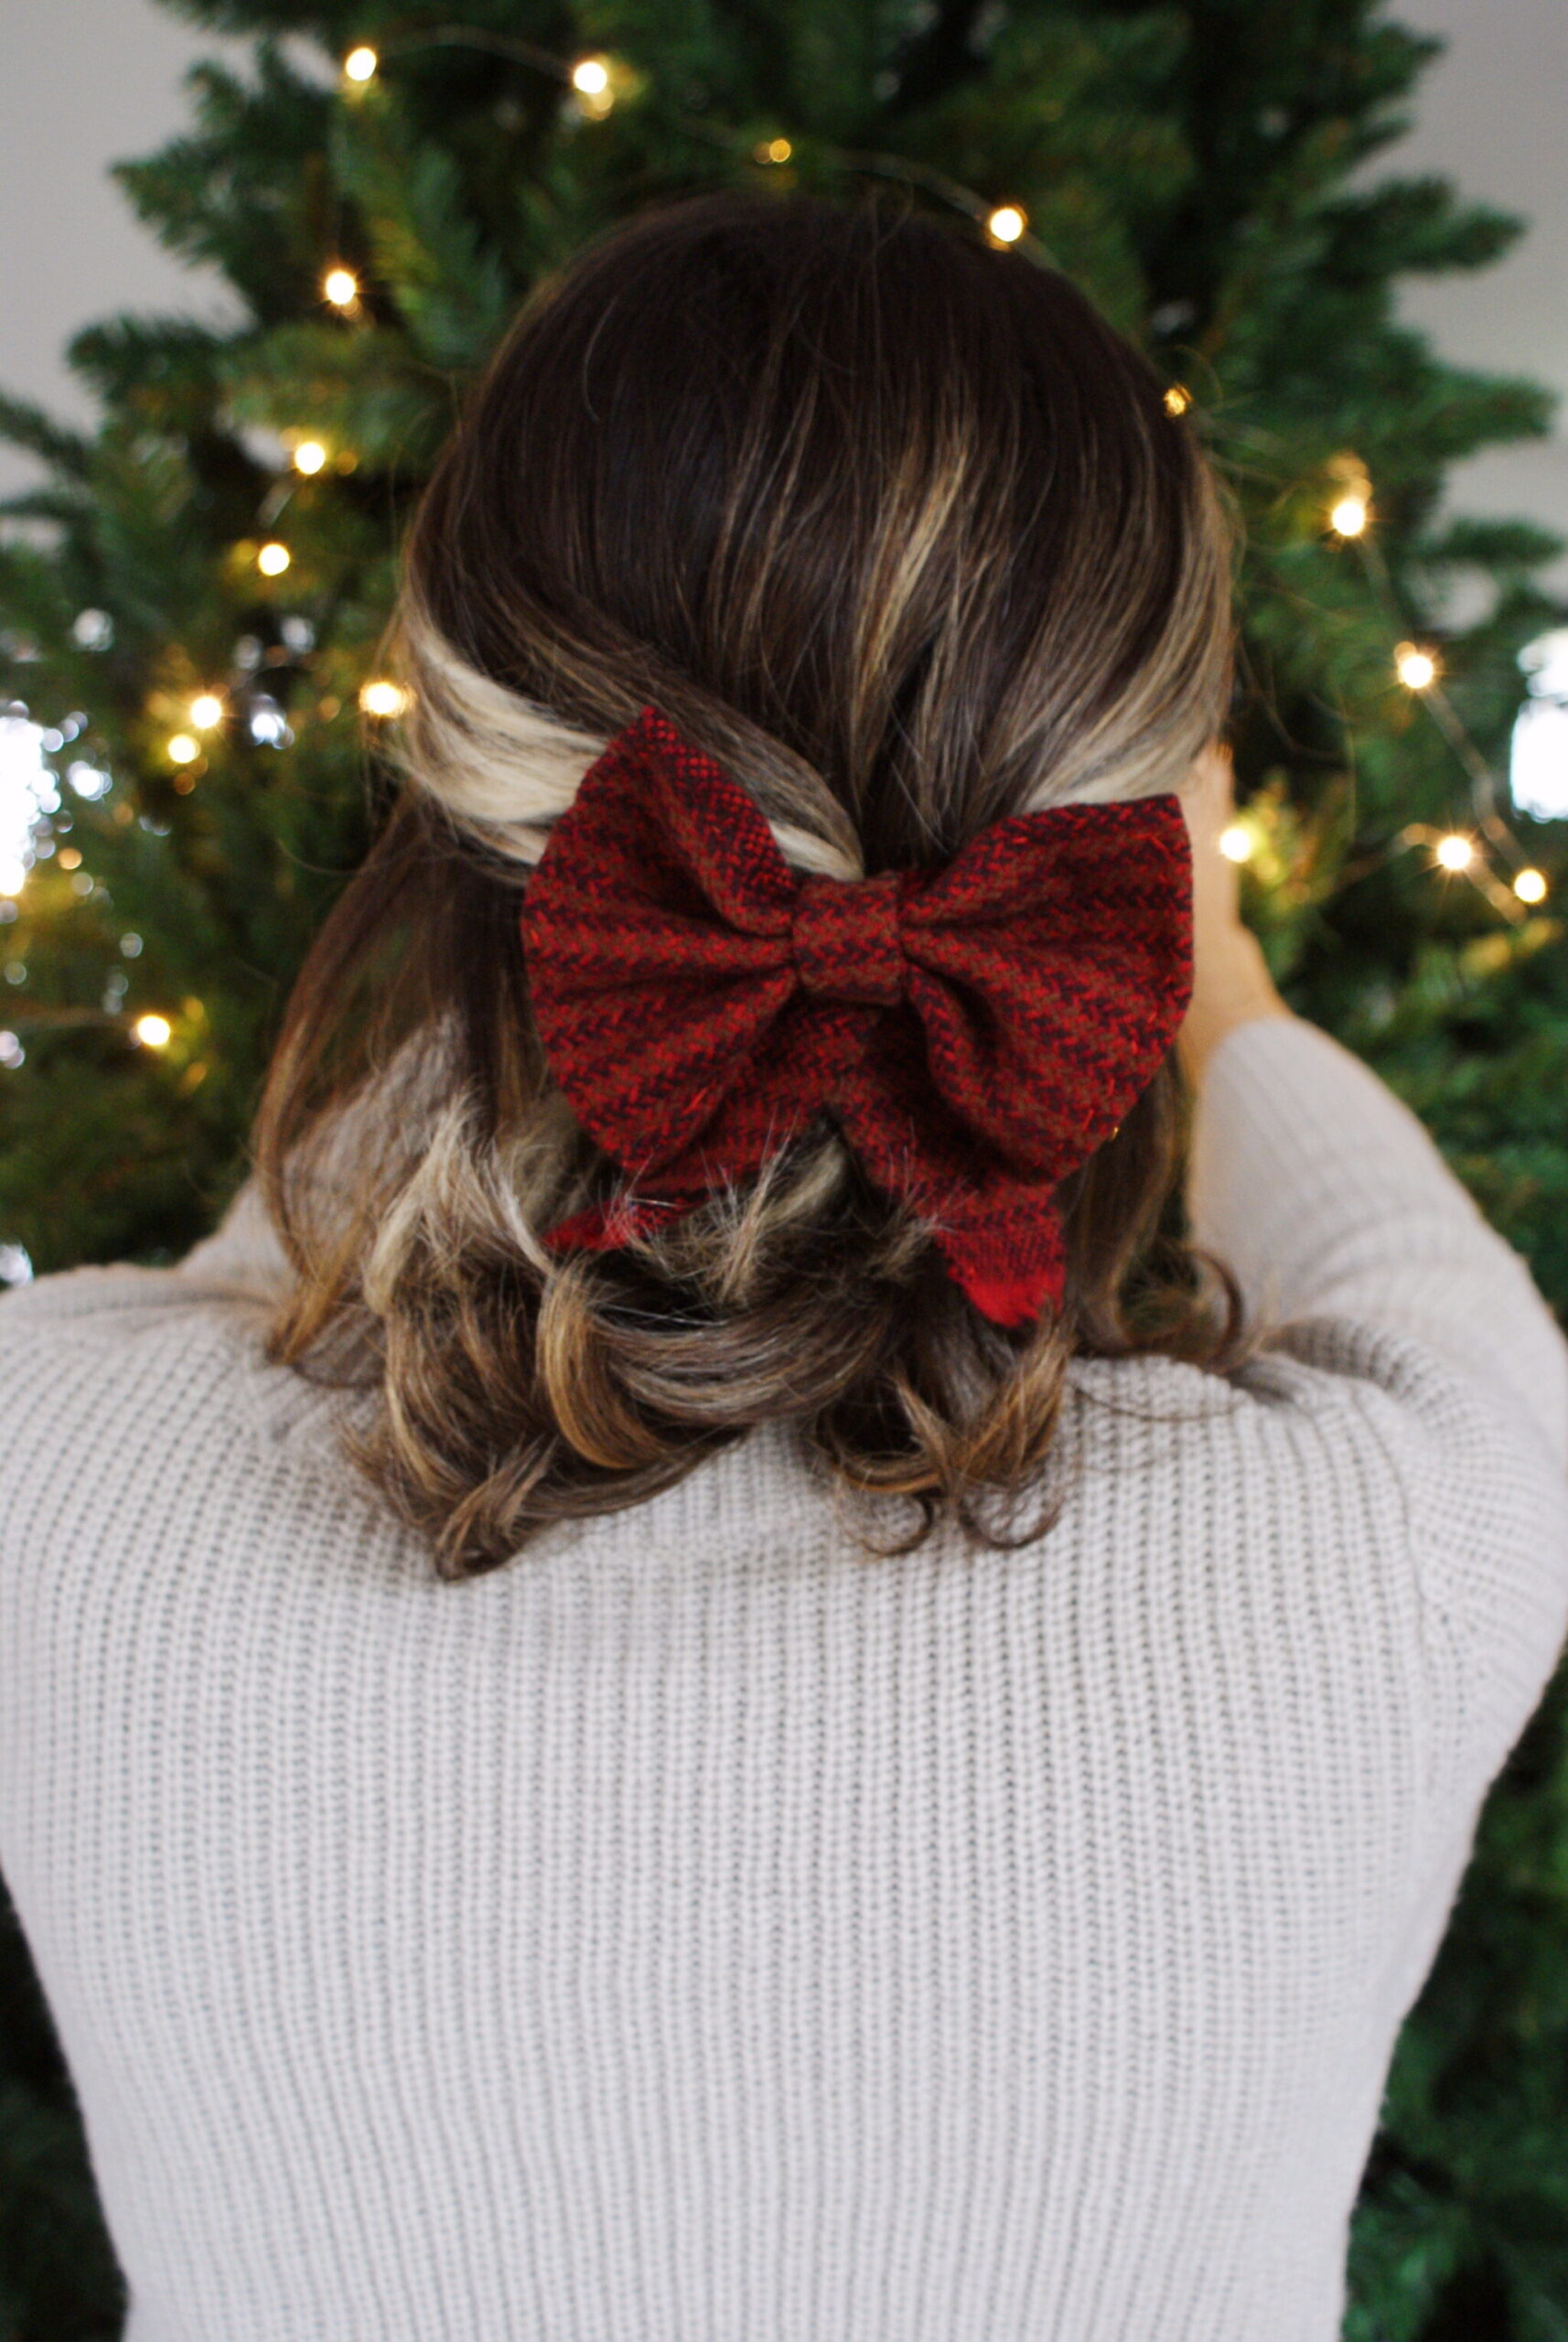 diy tartan bow hair clip easy handmade accessory festive outfits christmas